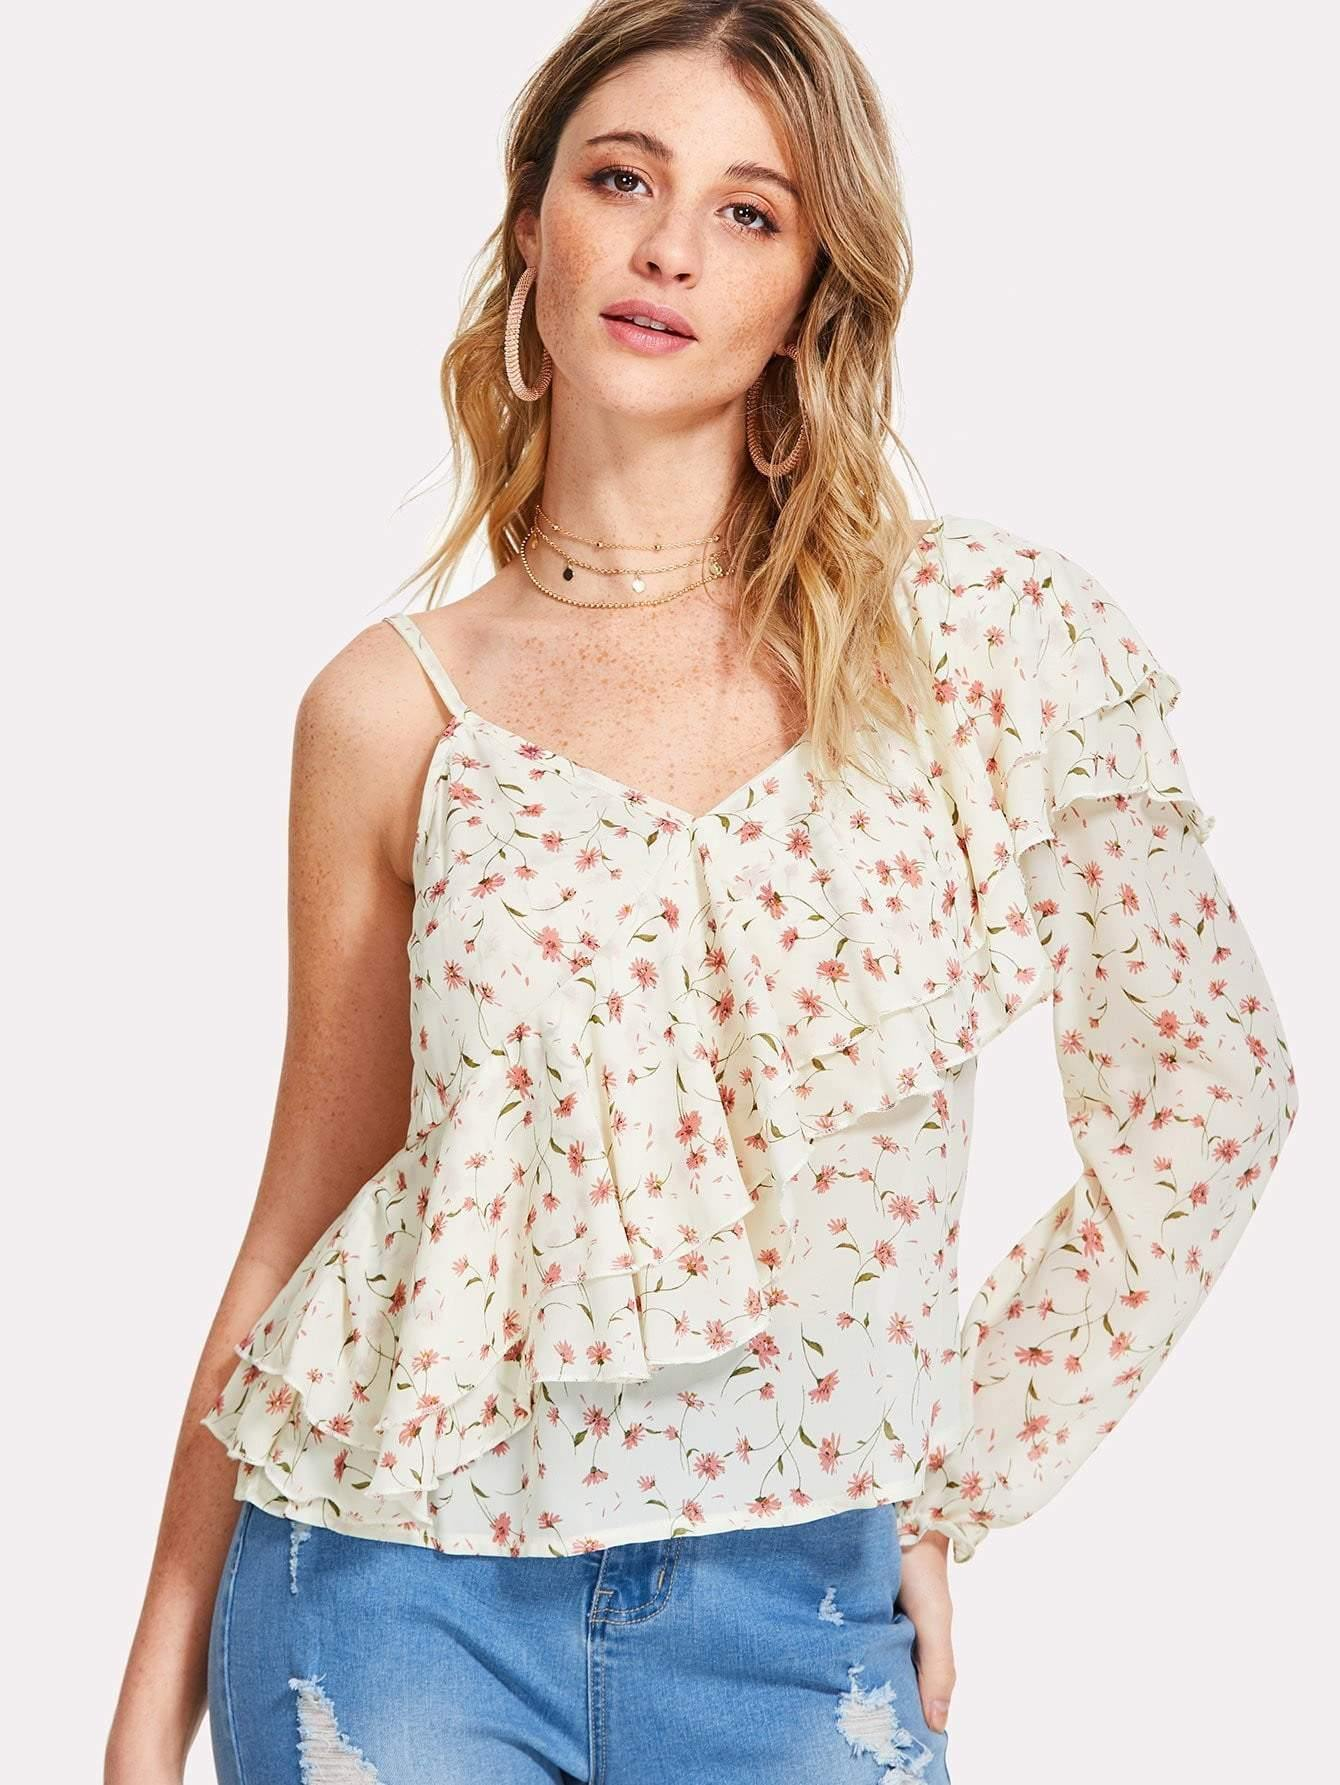 Off White Ruffle Blouse With Pink Flower Print - zooomberg